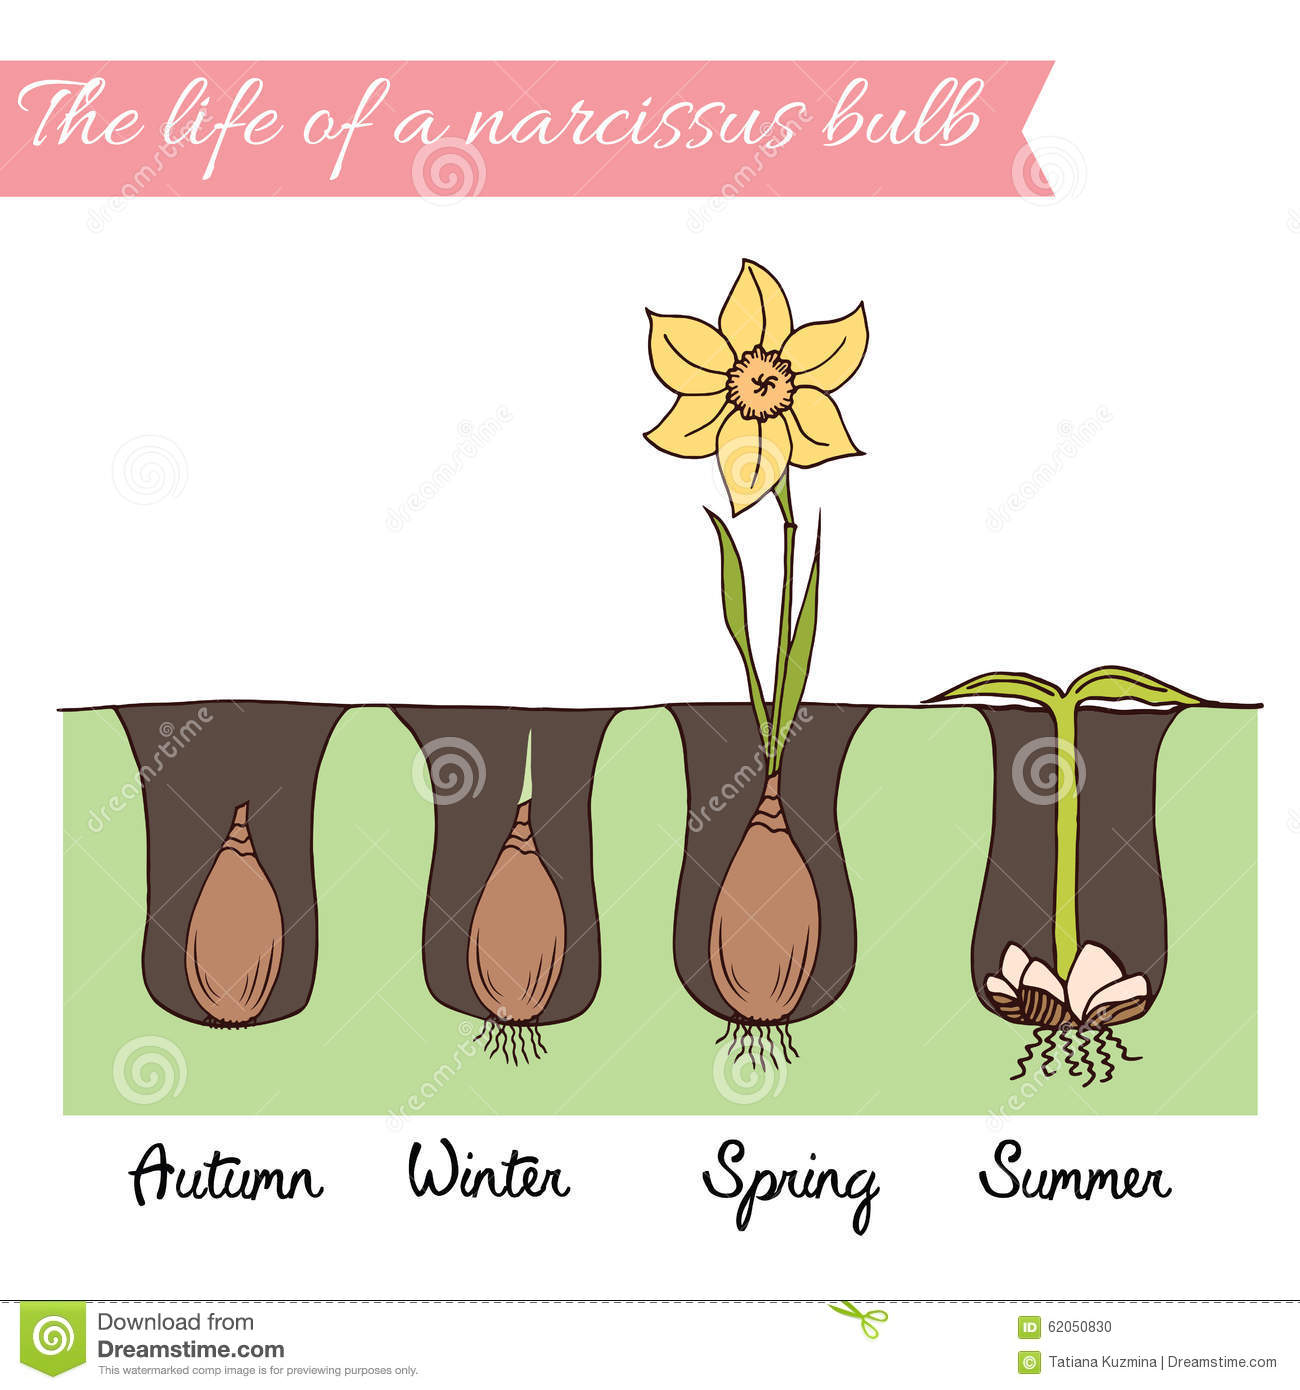 how to take care of narcissus plant